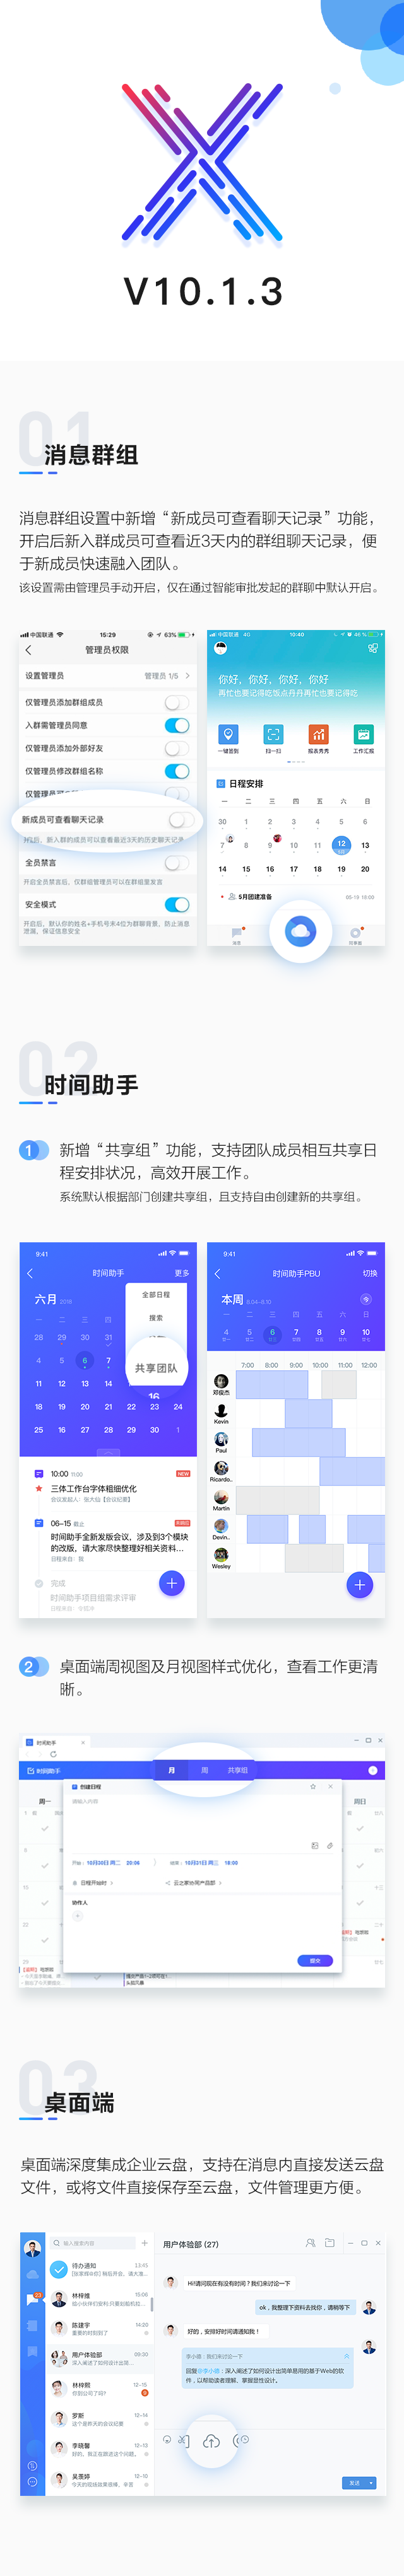 V10.1.1迭代.png